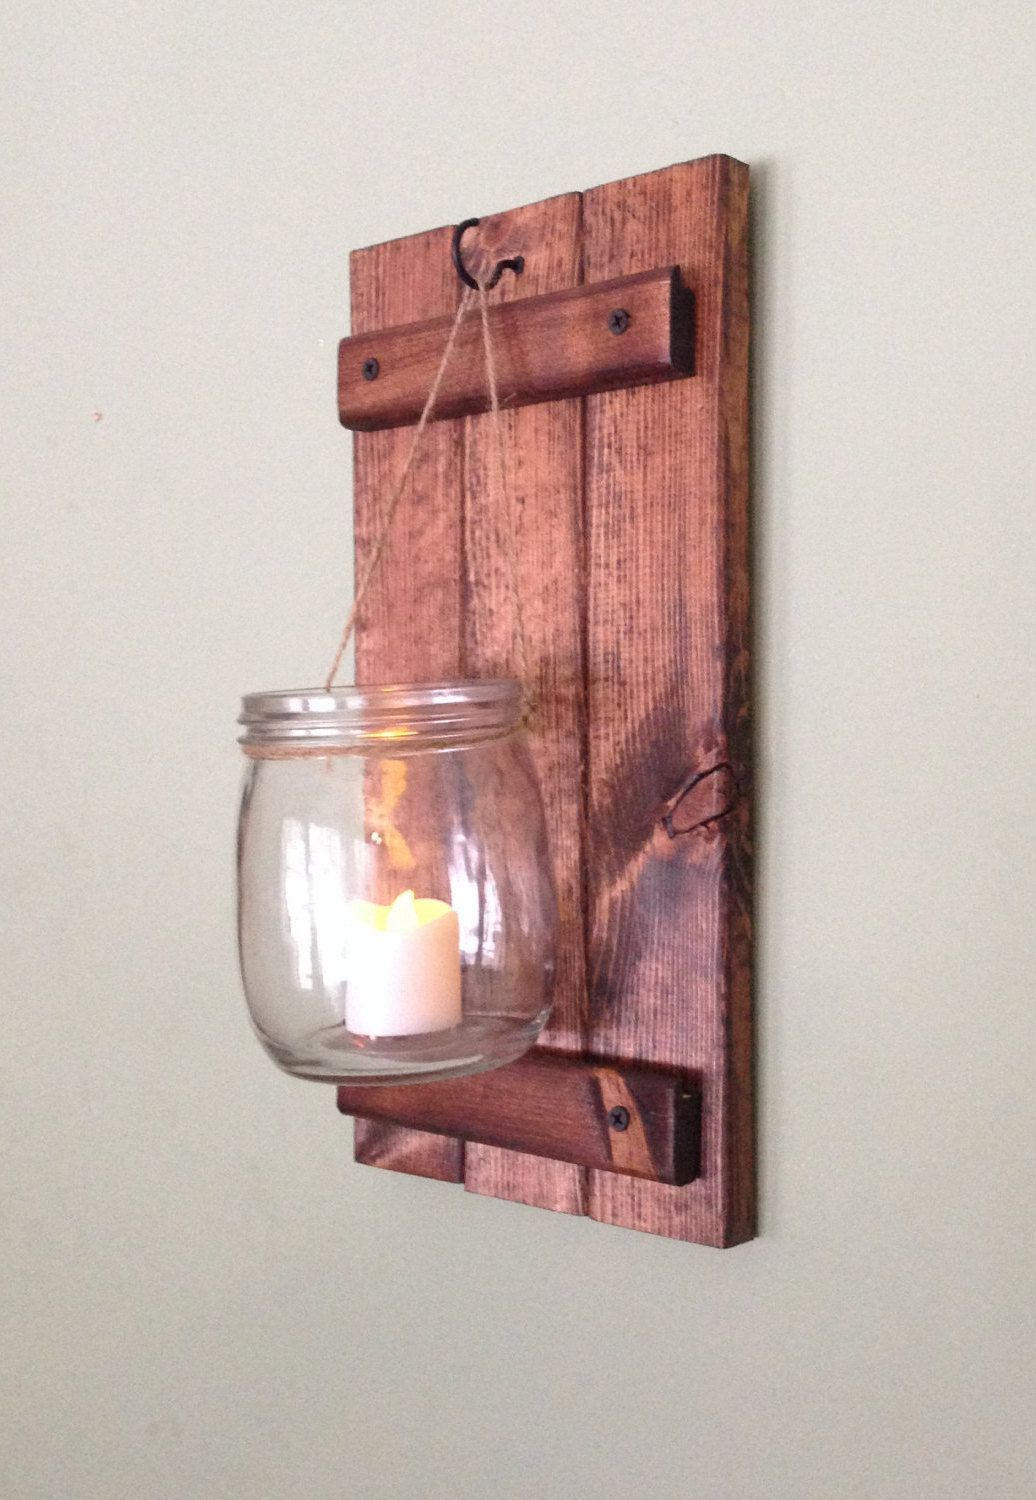 Wooden wall sconce rustic candle holder country wall decor mason wooden wall sconce rustic candle holder country wall decor mason jar wall sconce rustic wedding decor amipublicfo Image collections